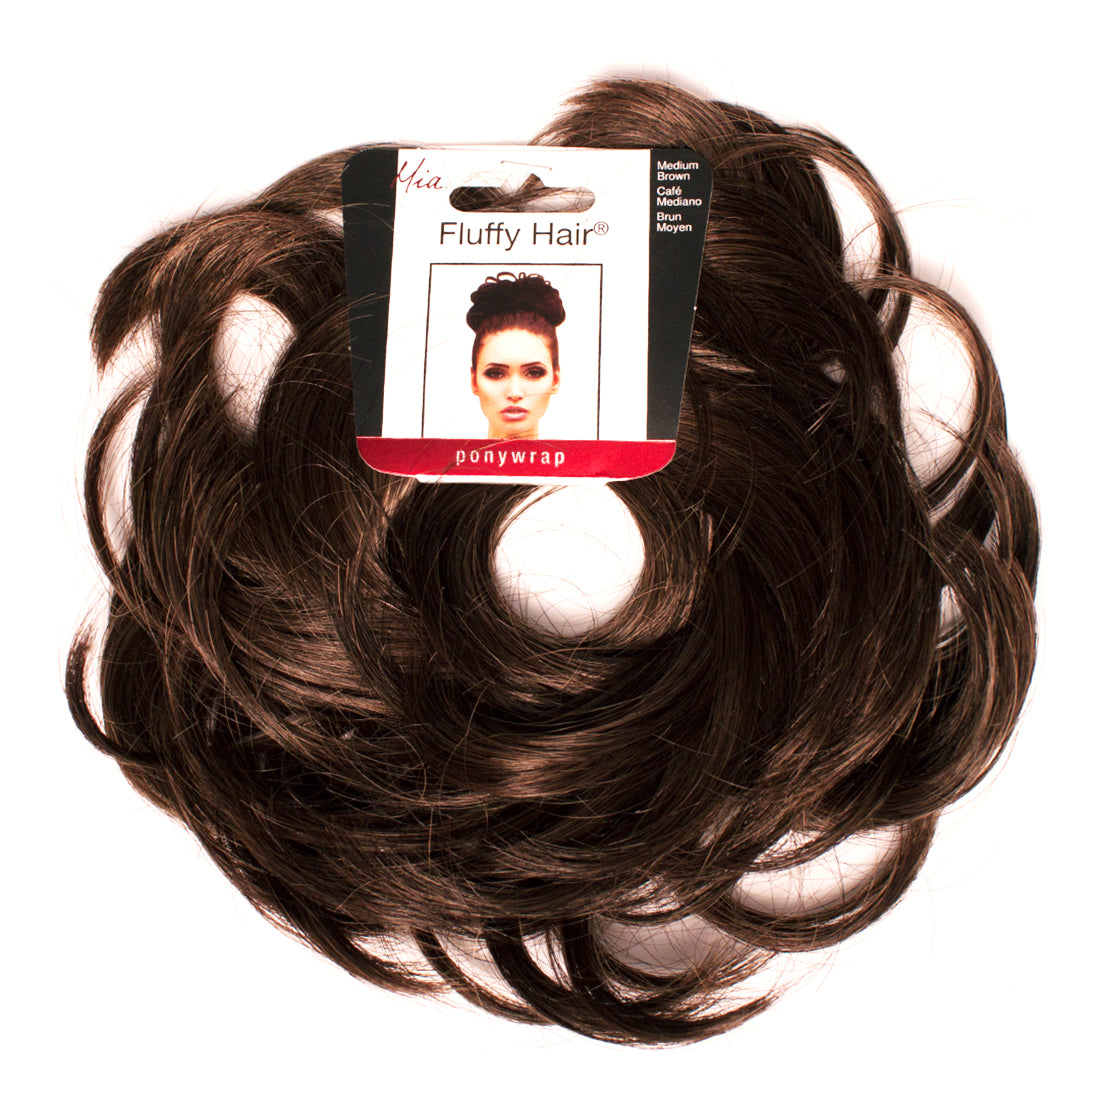 Fluffy Hair Ponywrap® - Medium Brown